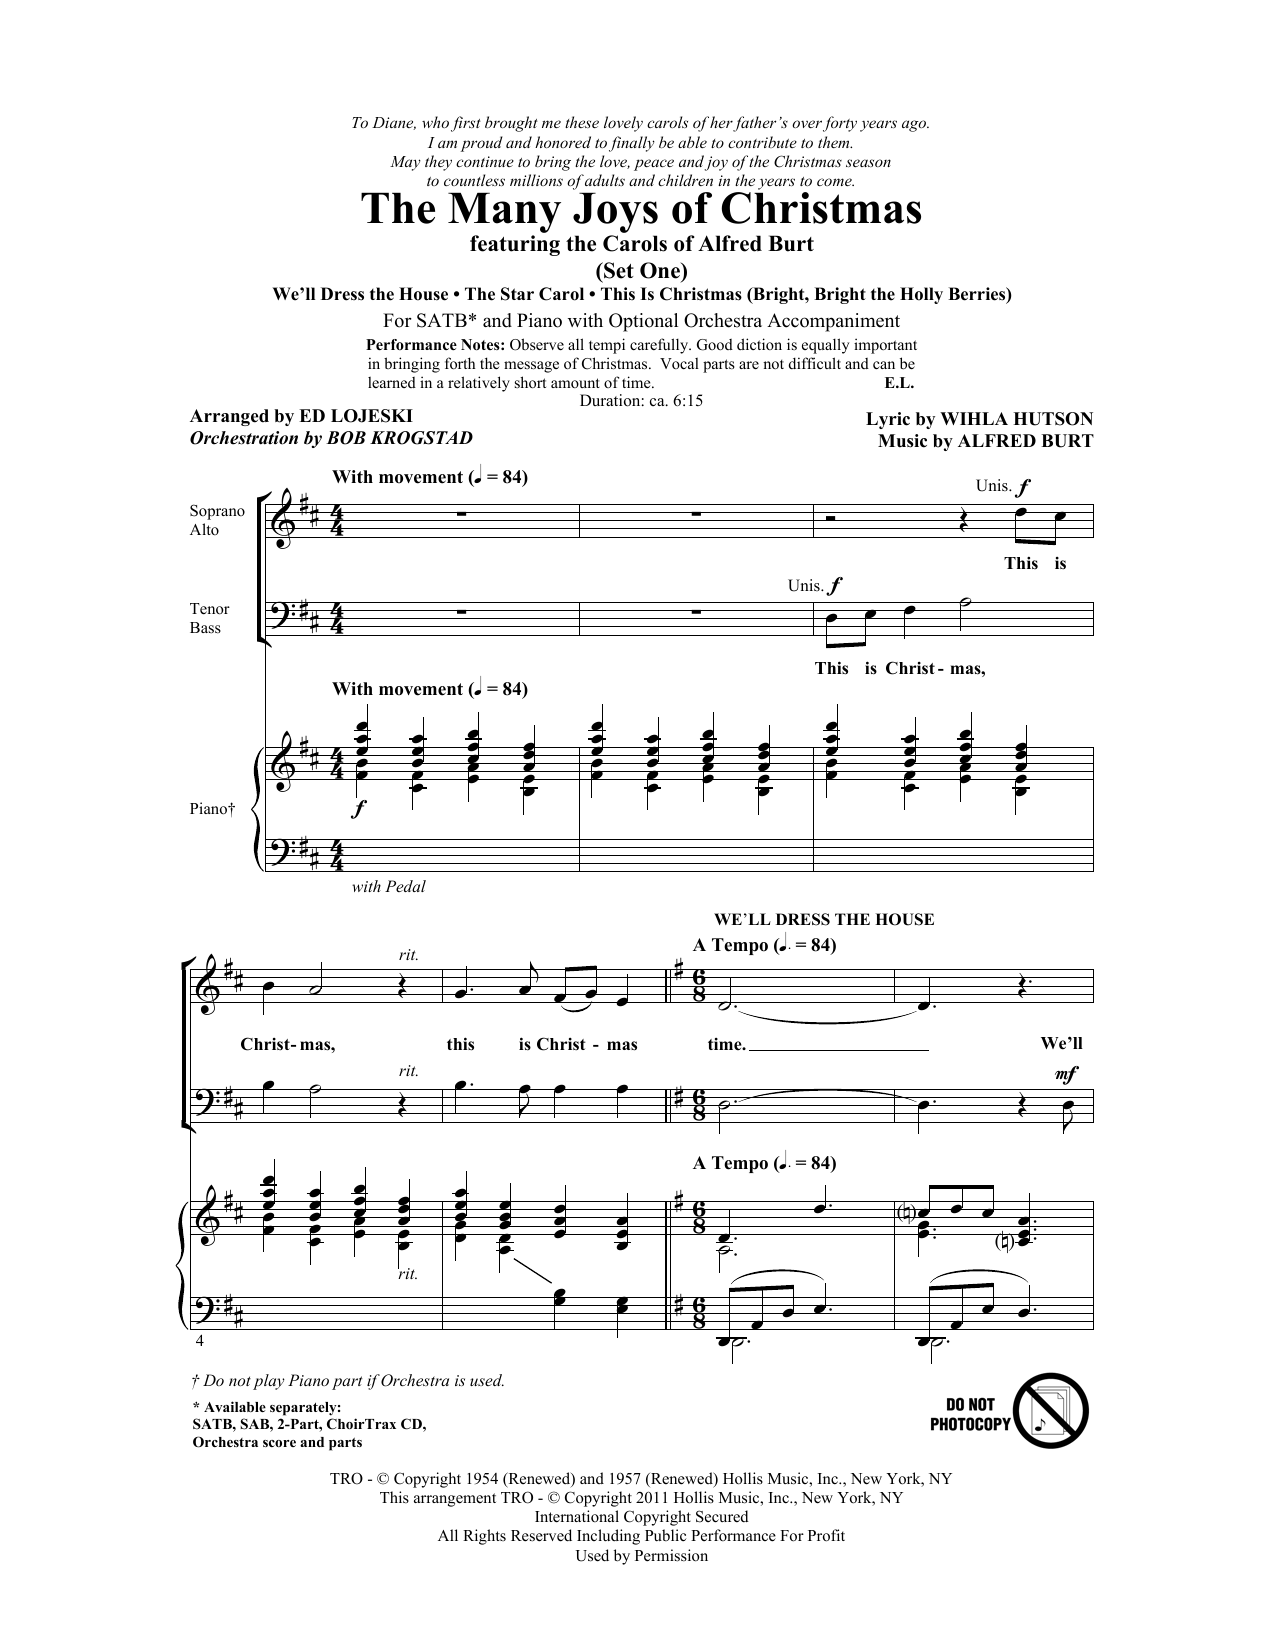 The Many Joys Of Christmas (featuring The Carols of Alfred Burt) Set 1 Sheet Music